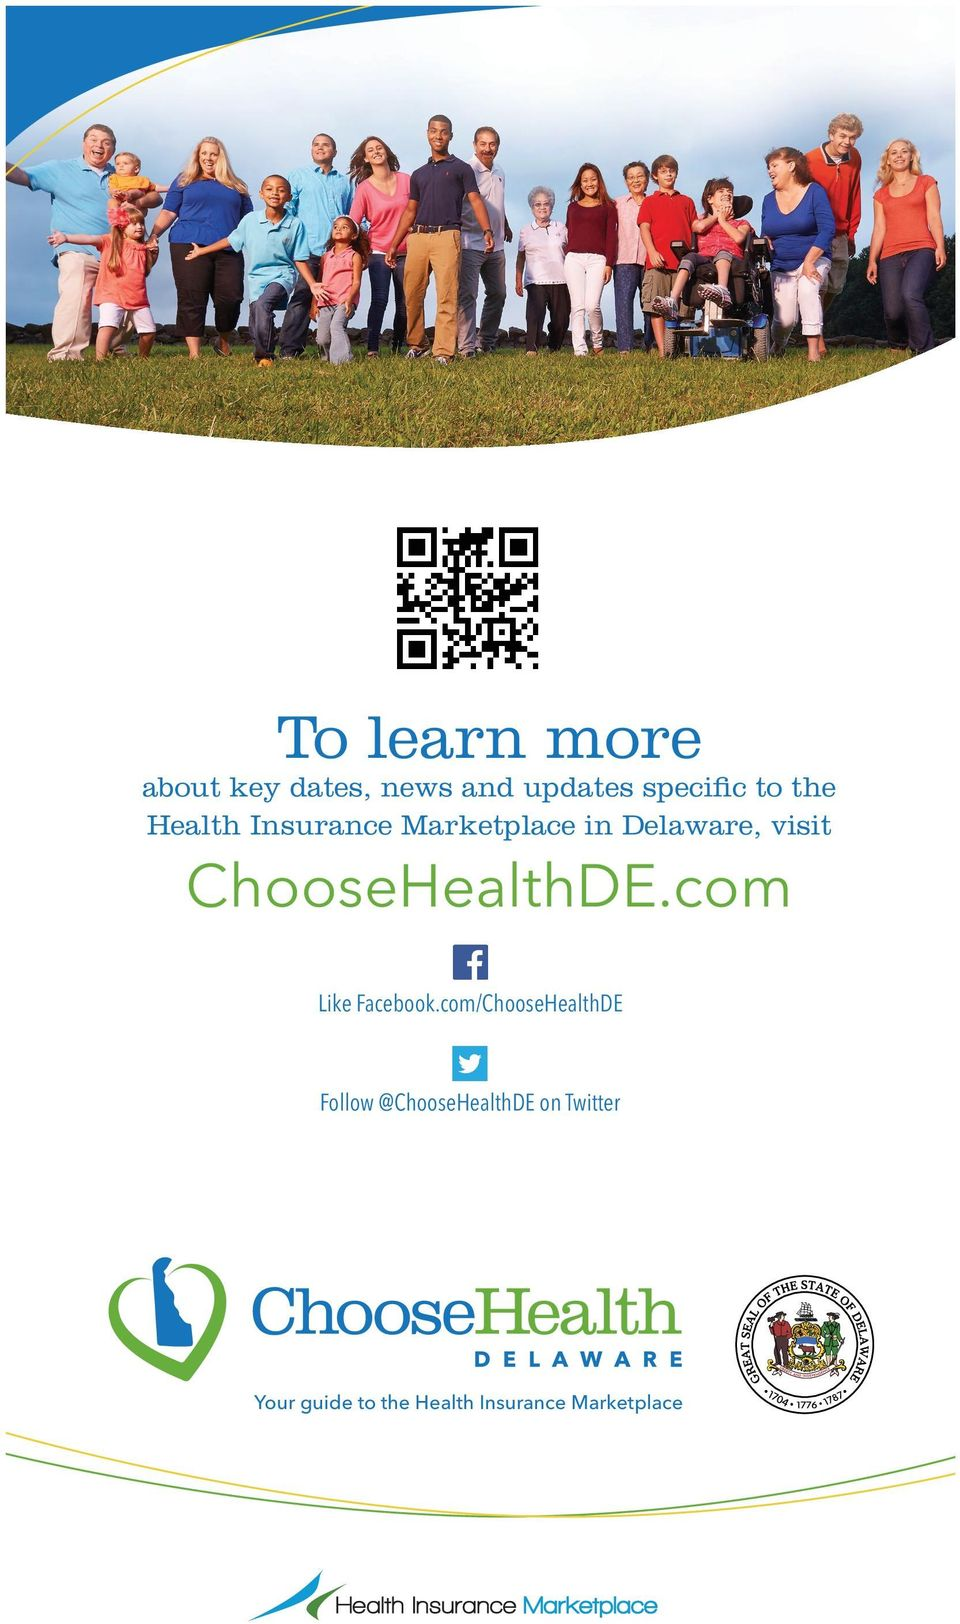 com/ChooseHealthDE Follow @ChooseHealthDE on Twitter Your guide to the